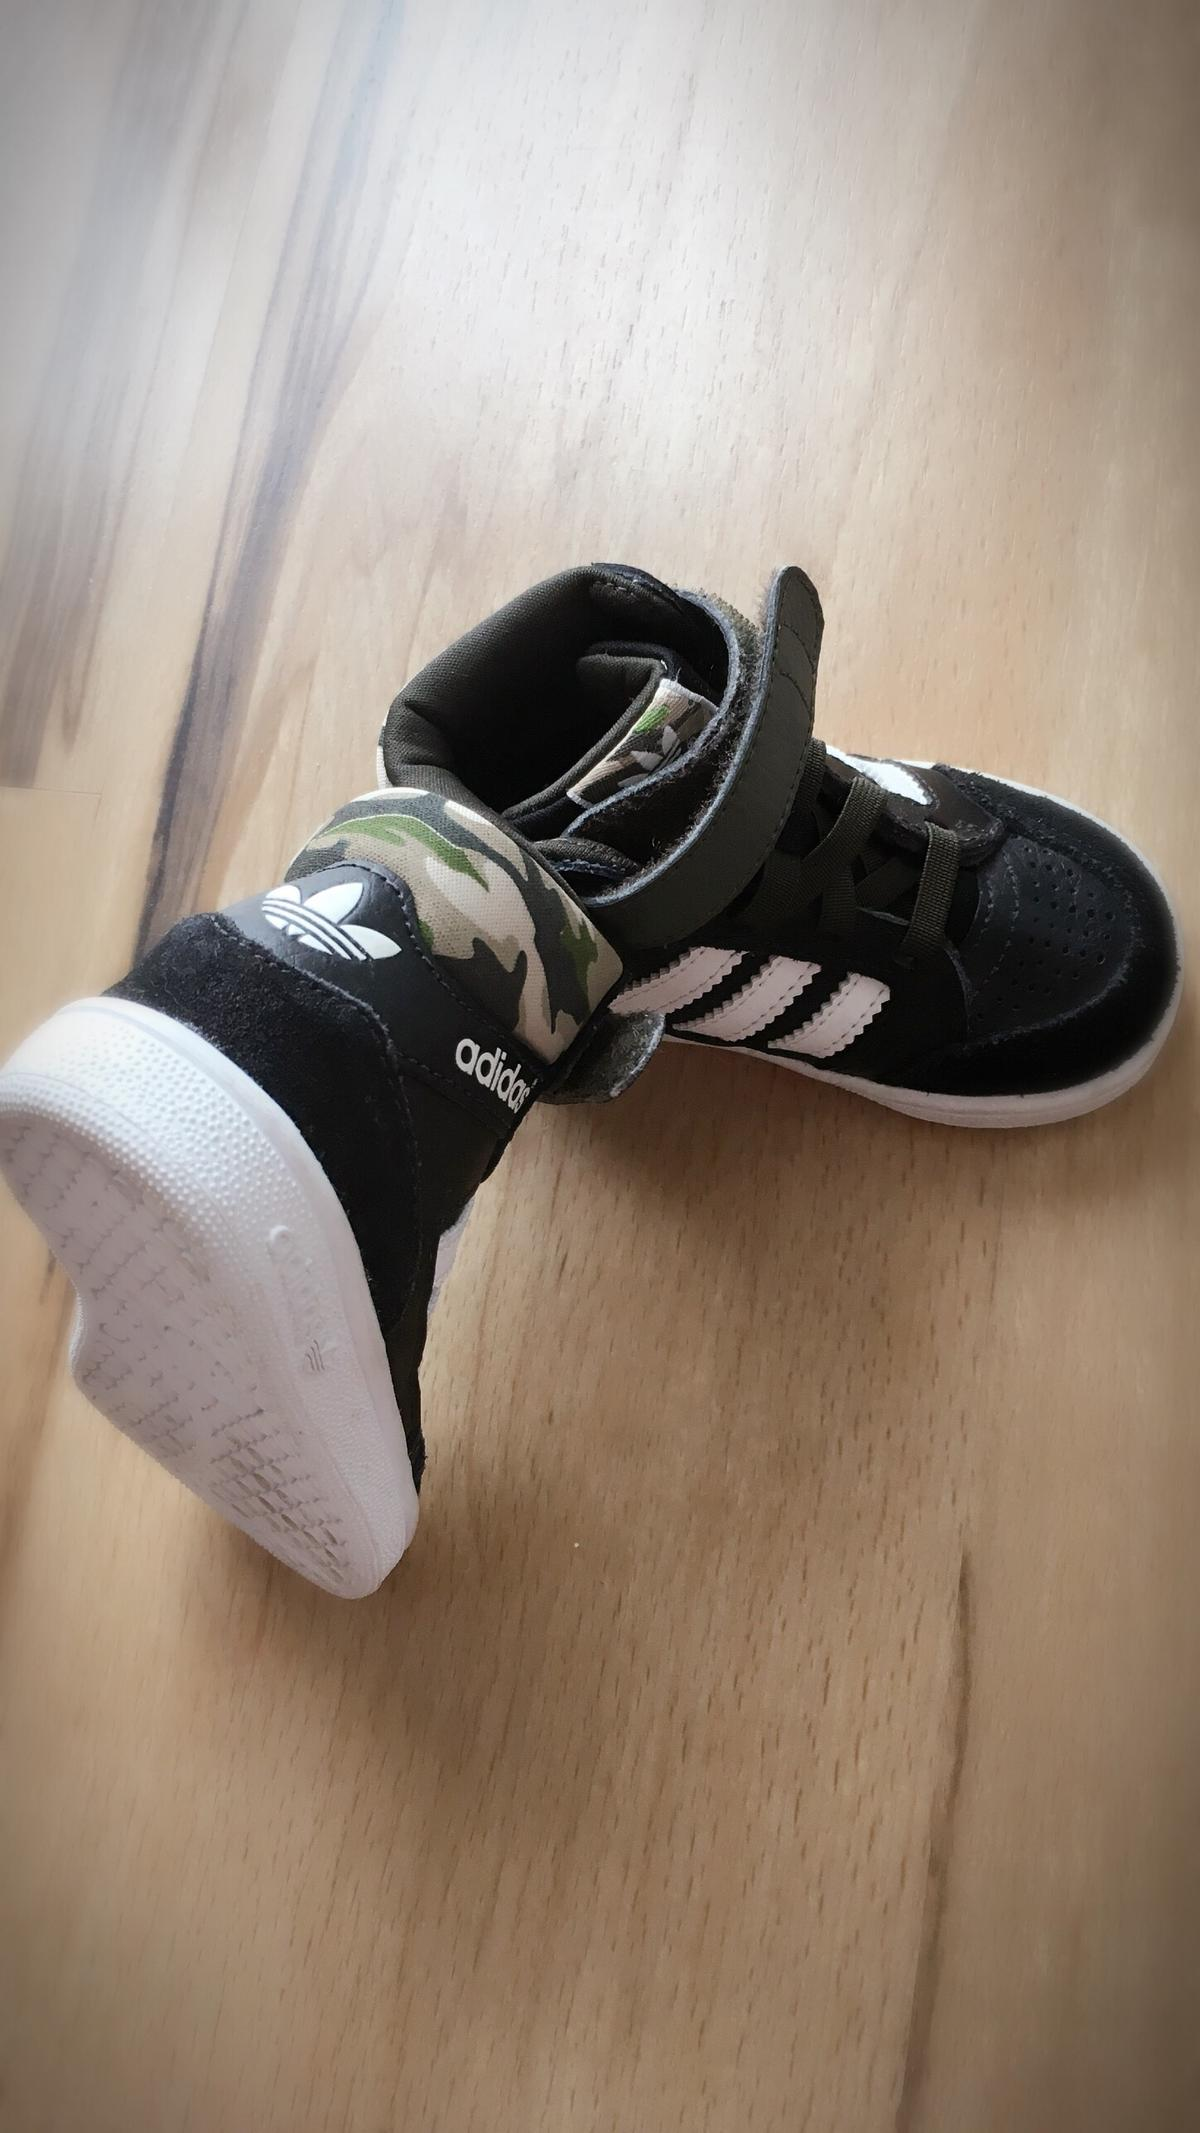 Coole Adidas Camouflage Schuhe